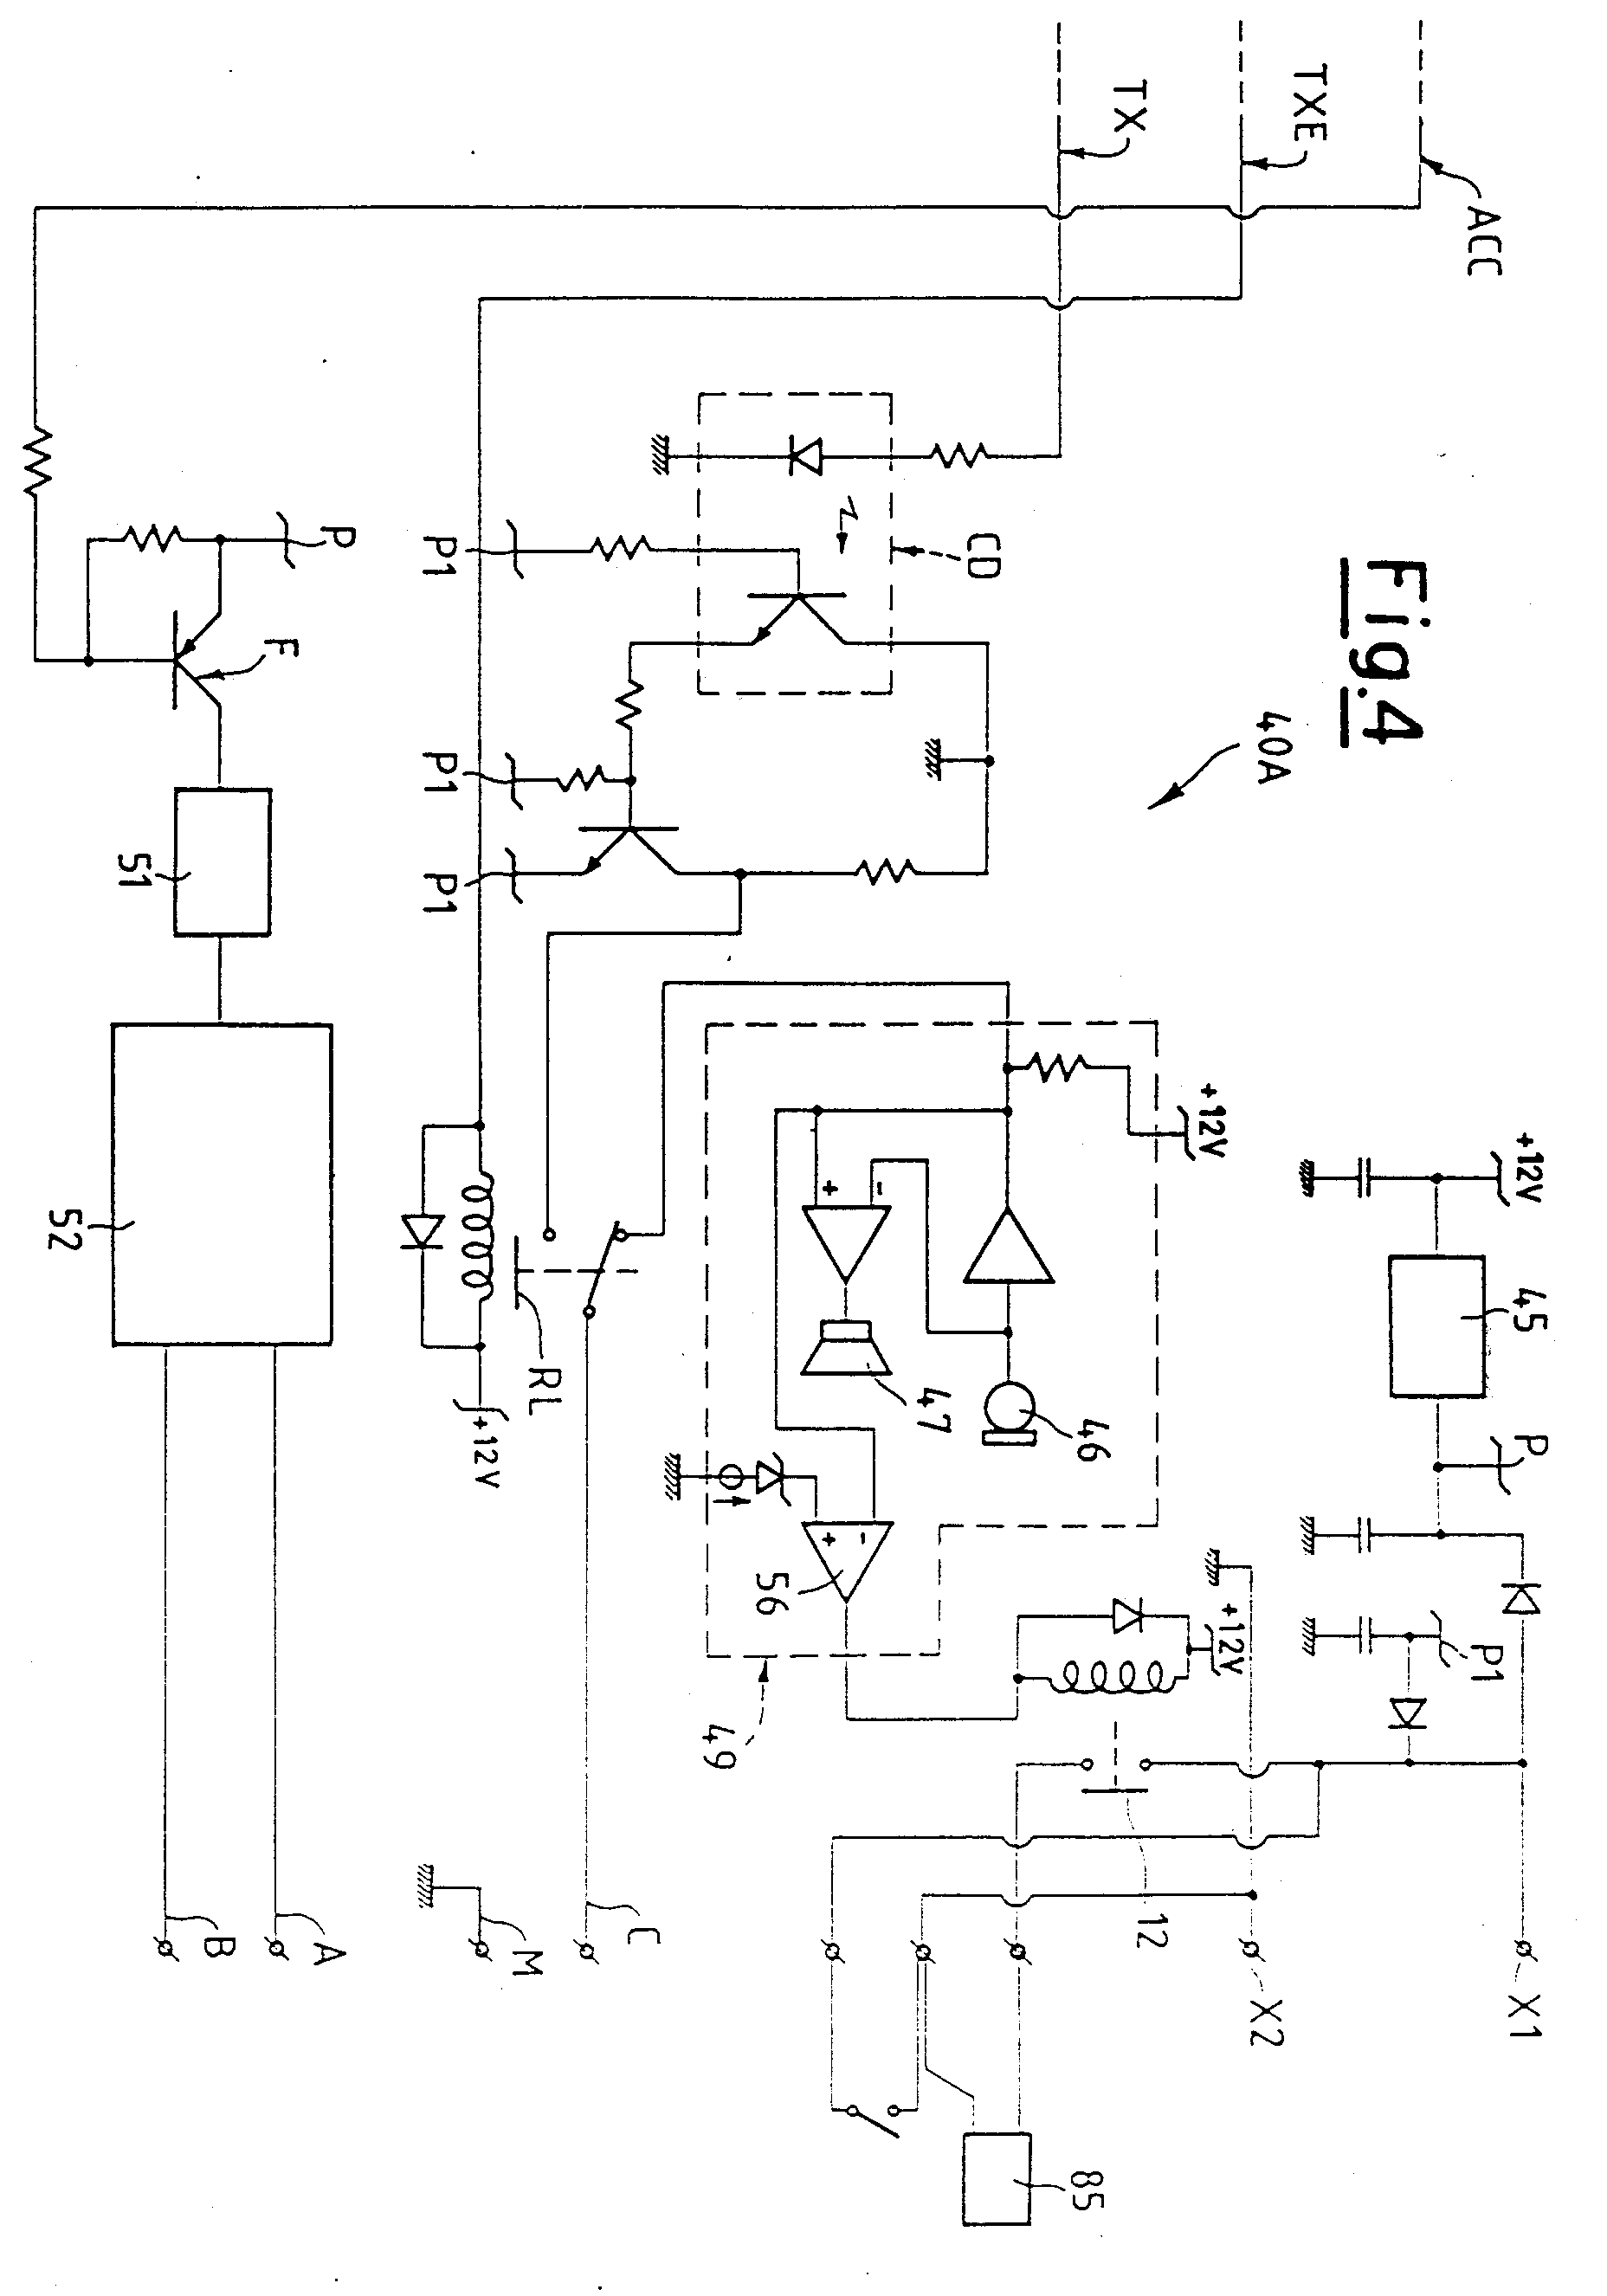 00130001 patent ep0876044a2 electric connection system for intercom and bitron video intercom wiring diagram at bayanpartner.co